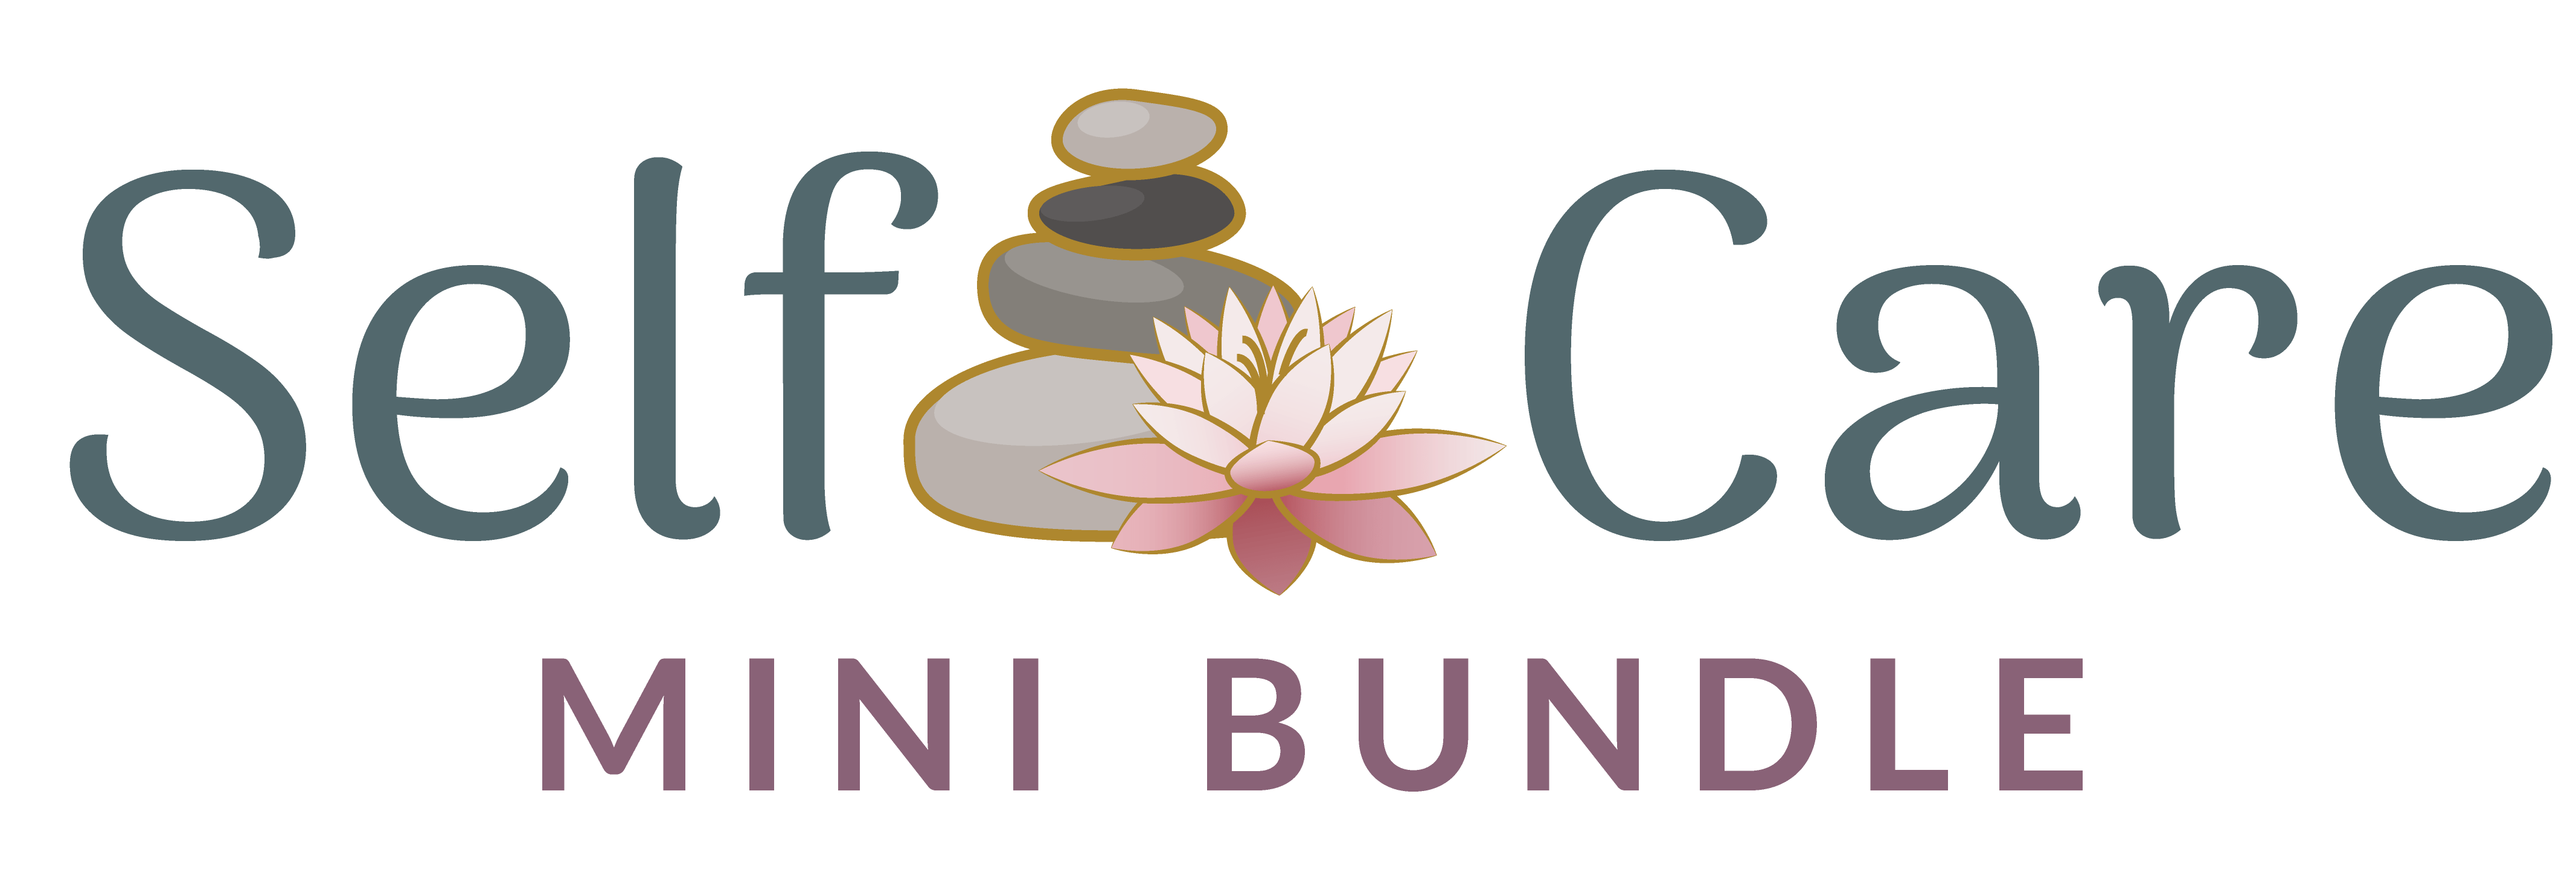 Self Care Mini Bundle Banner